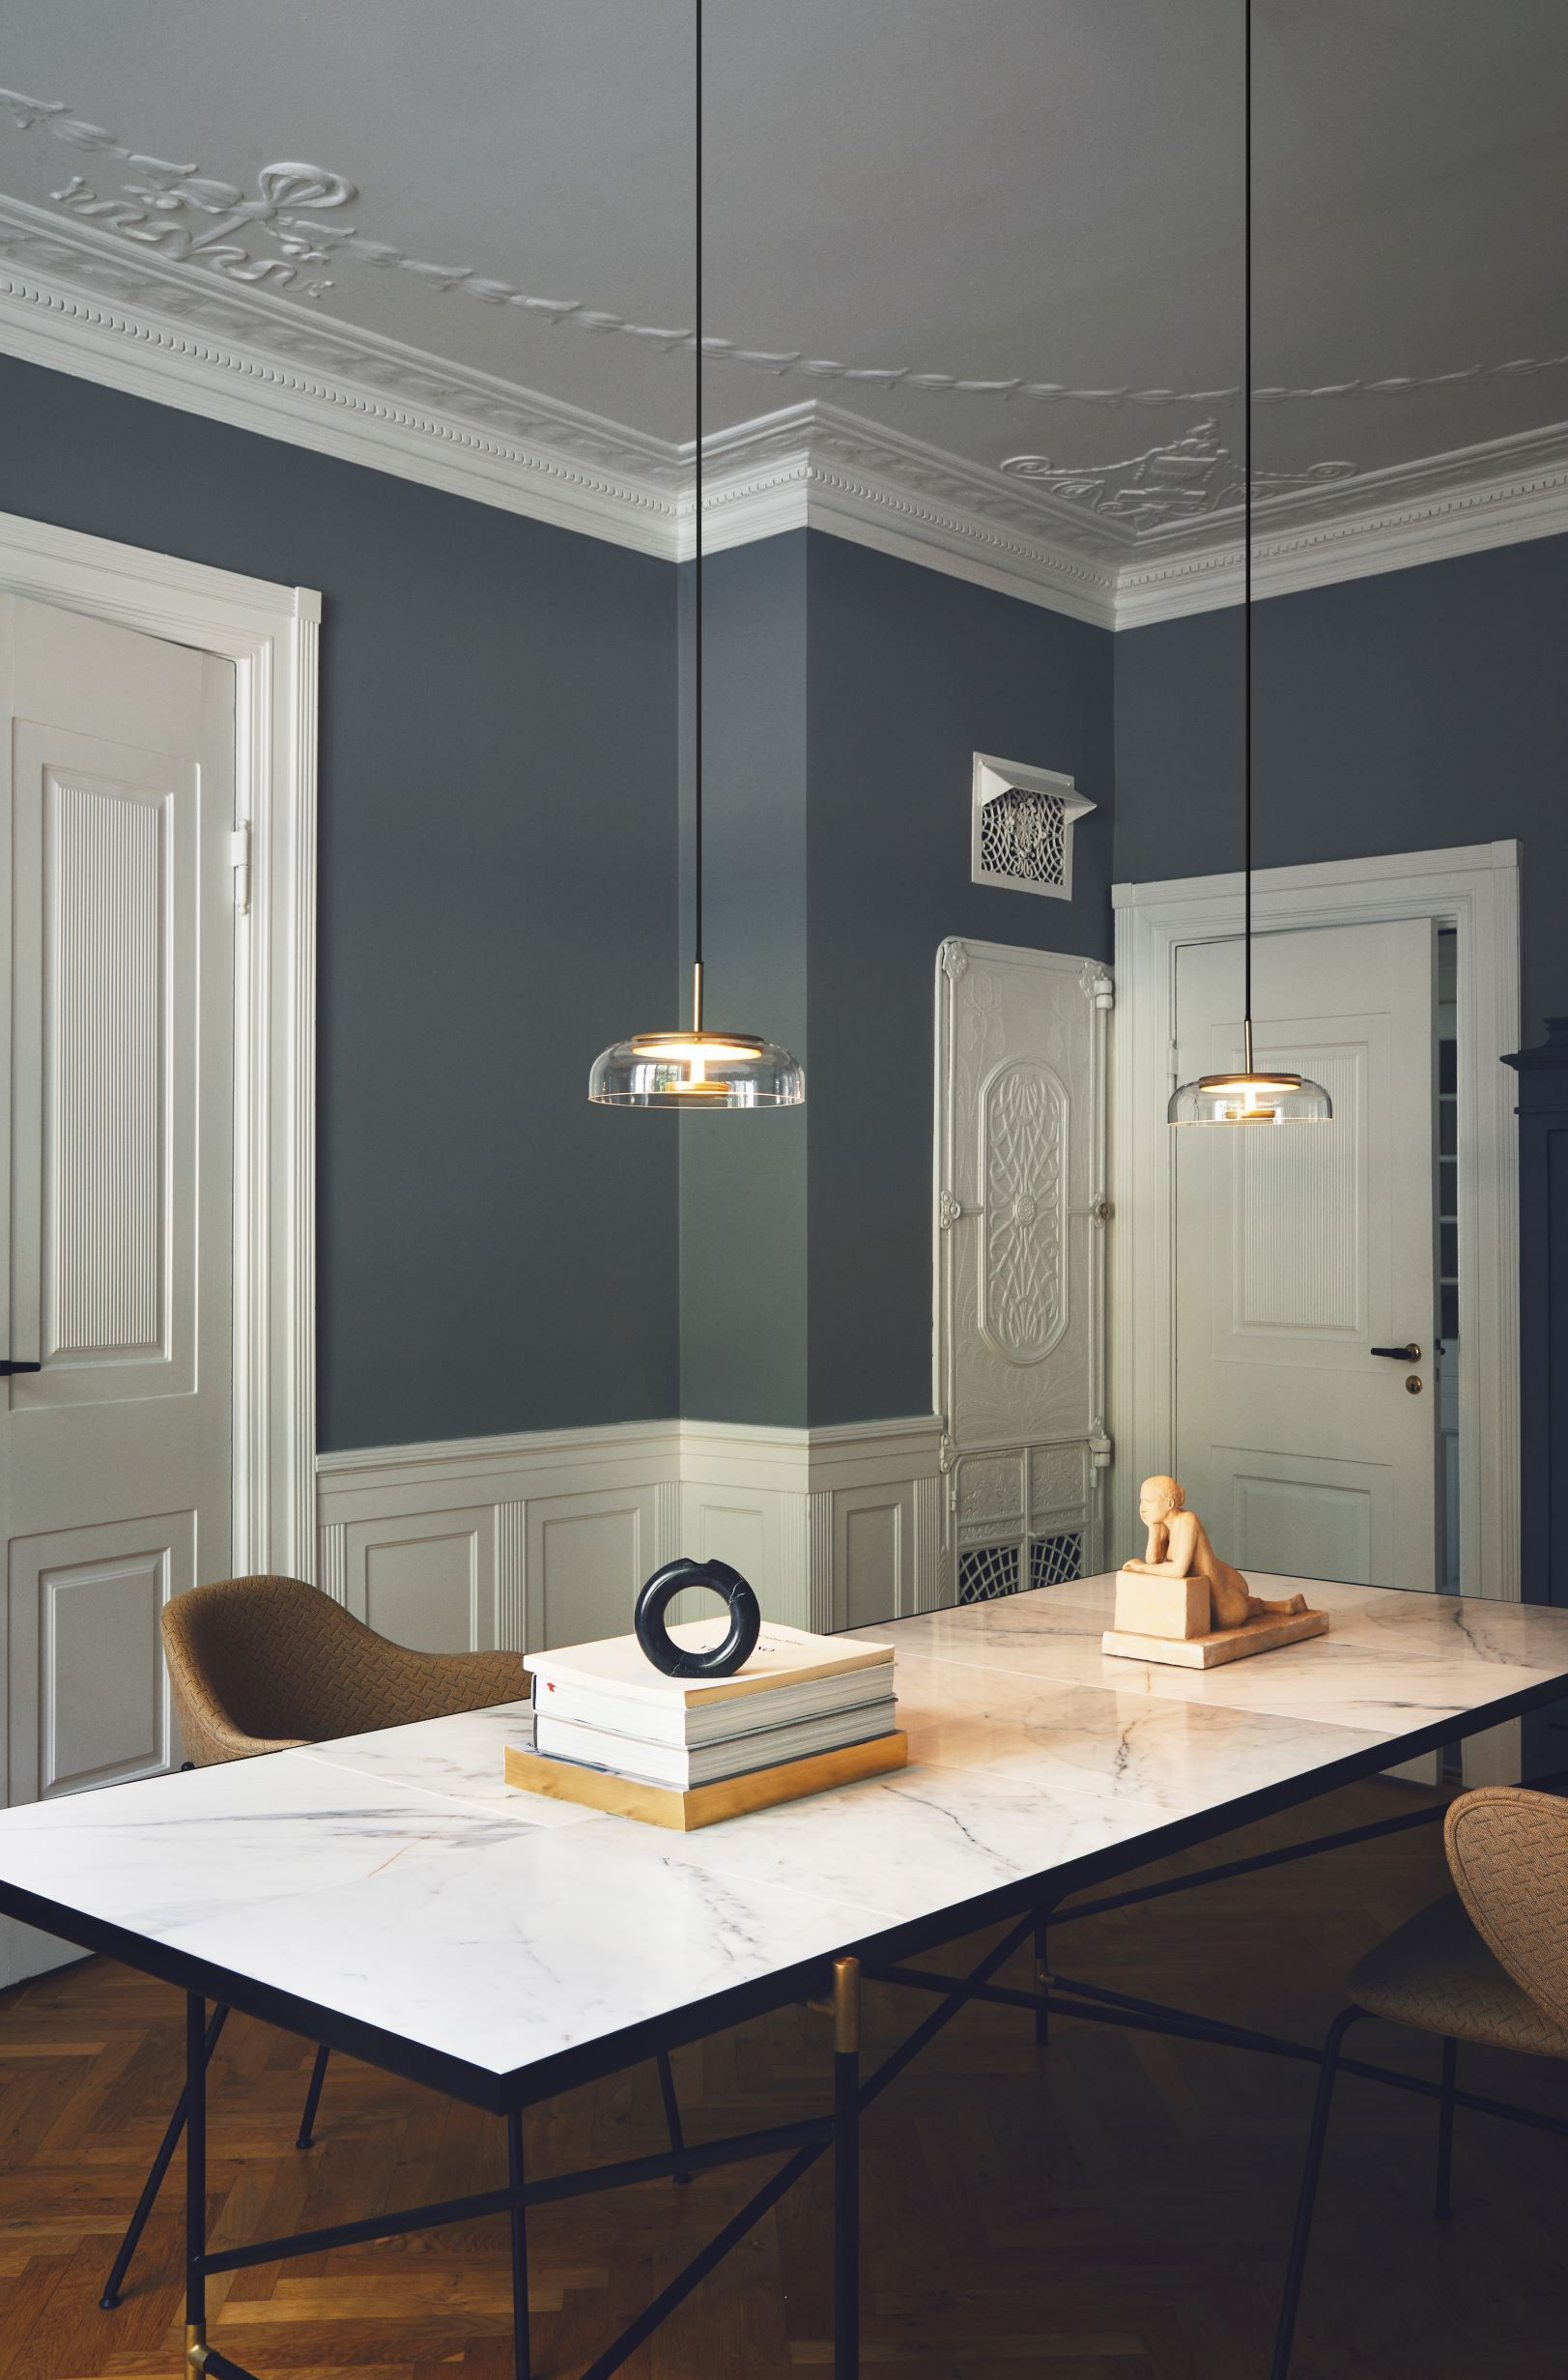 Lighting up a Room with Danish Design Company Nuura | Danish